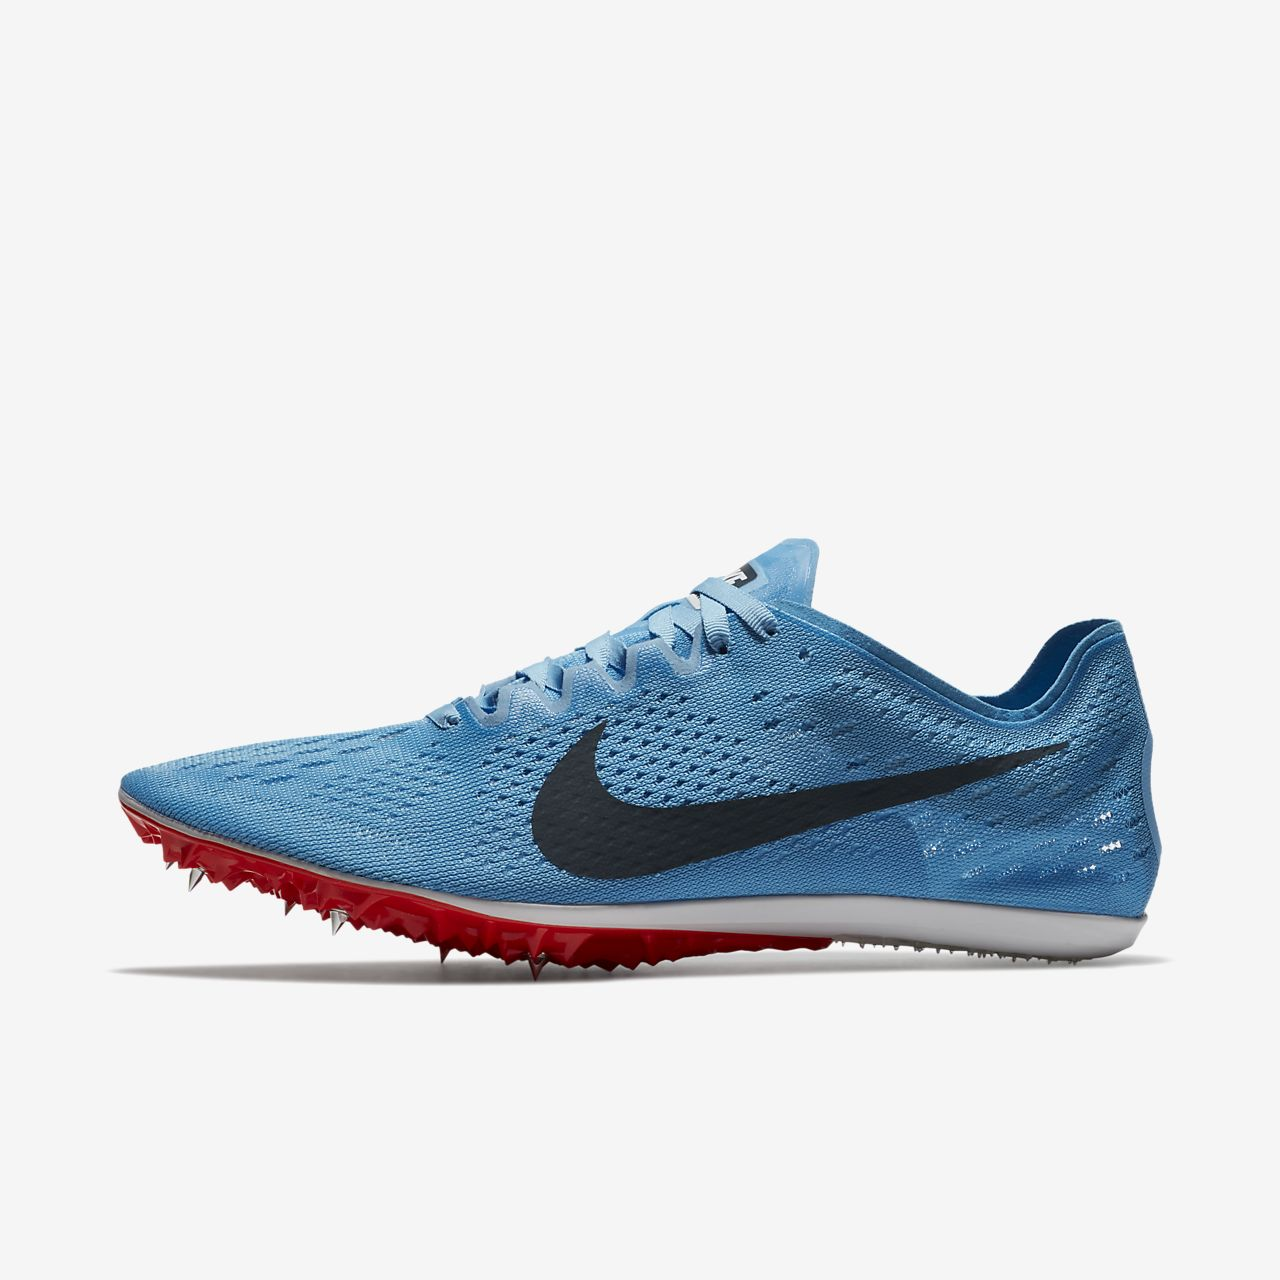 ... Nike Zoom Victory 3 Unisex Racing Spike